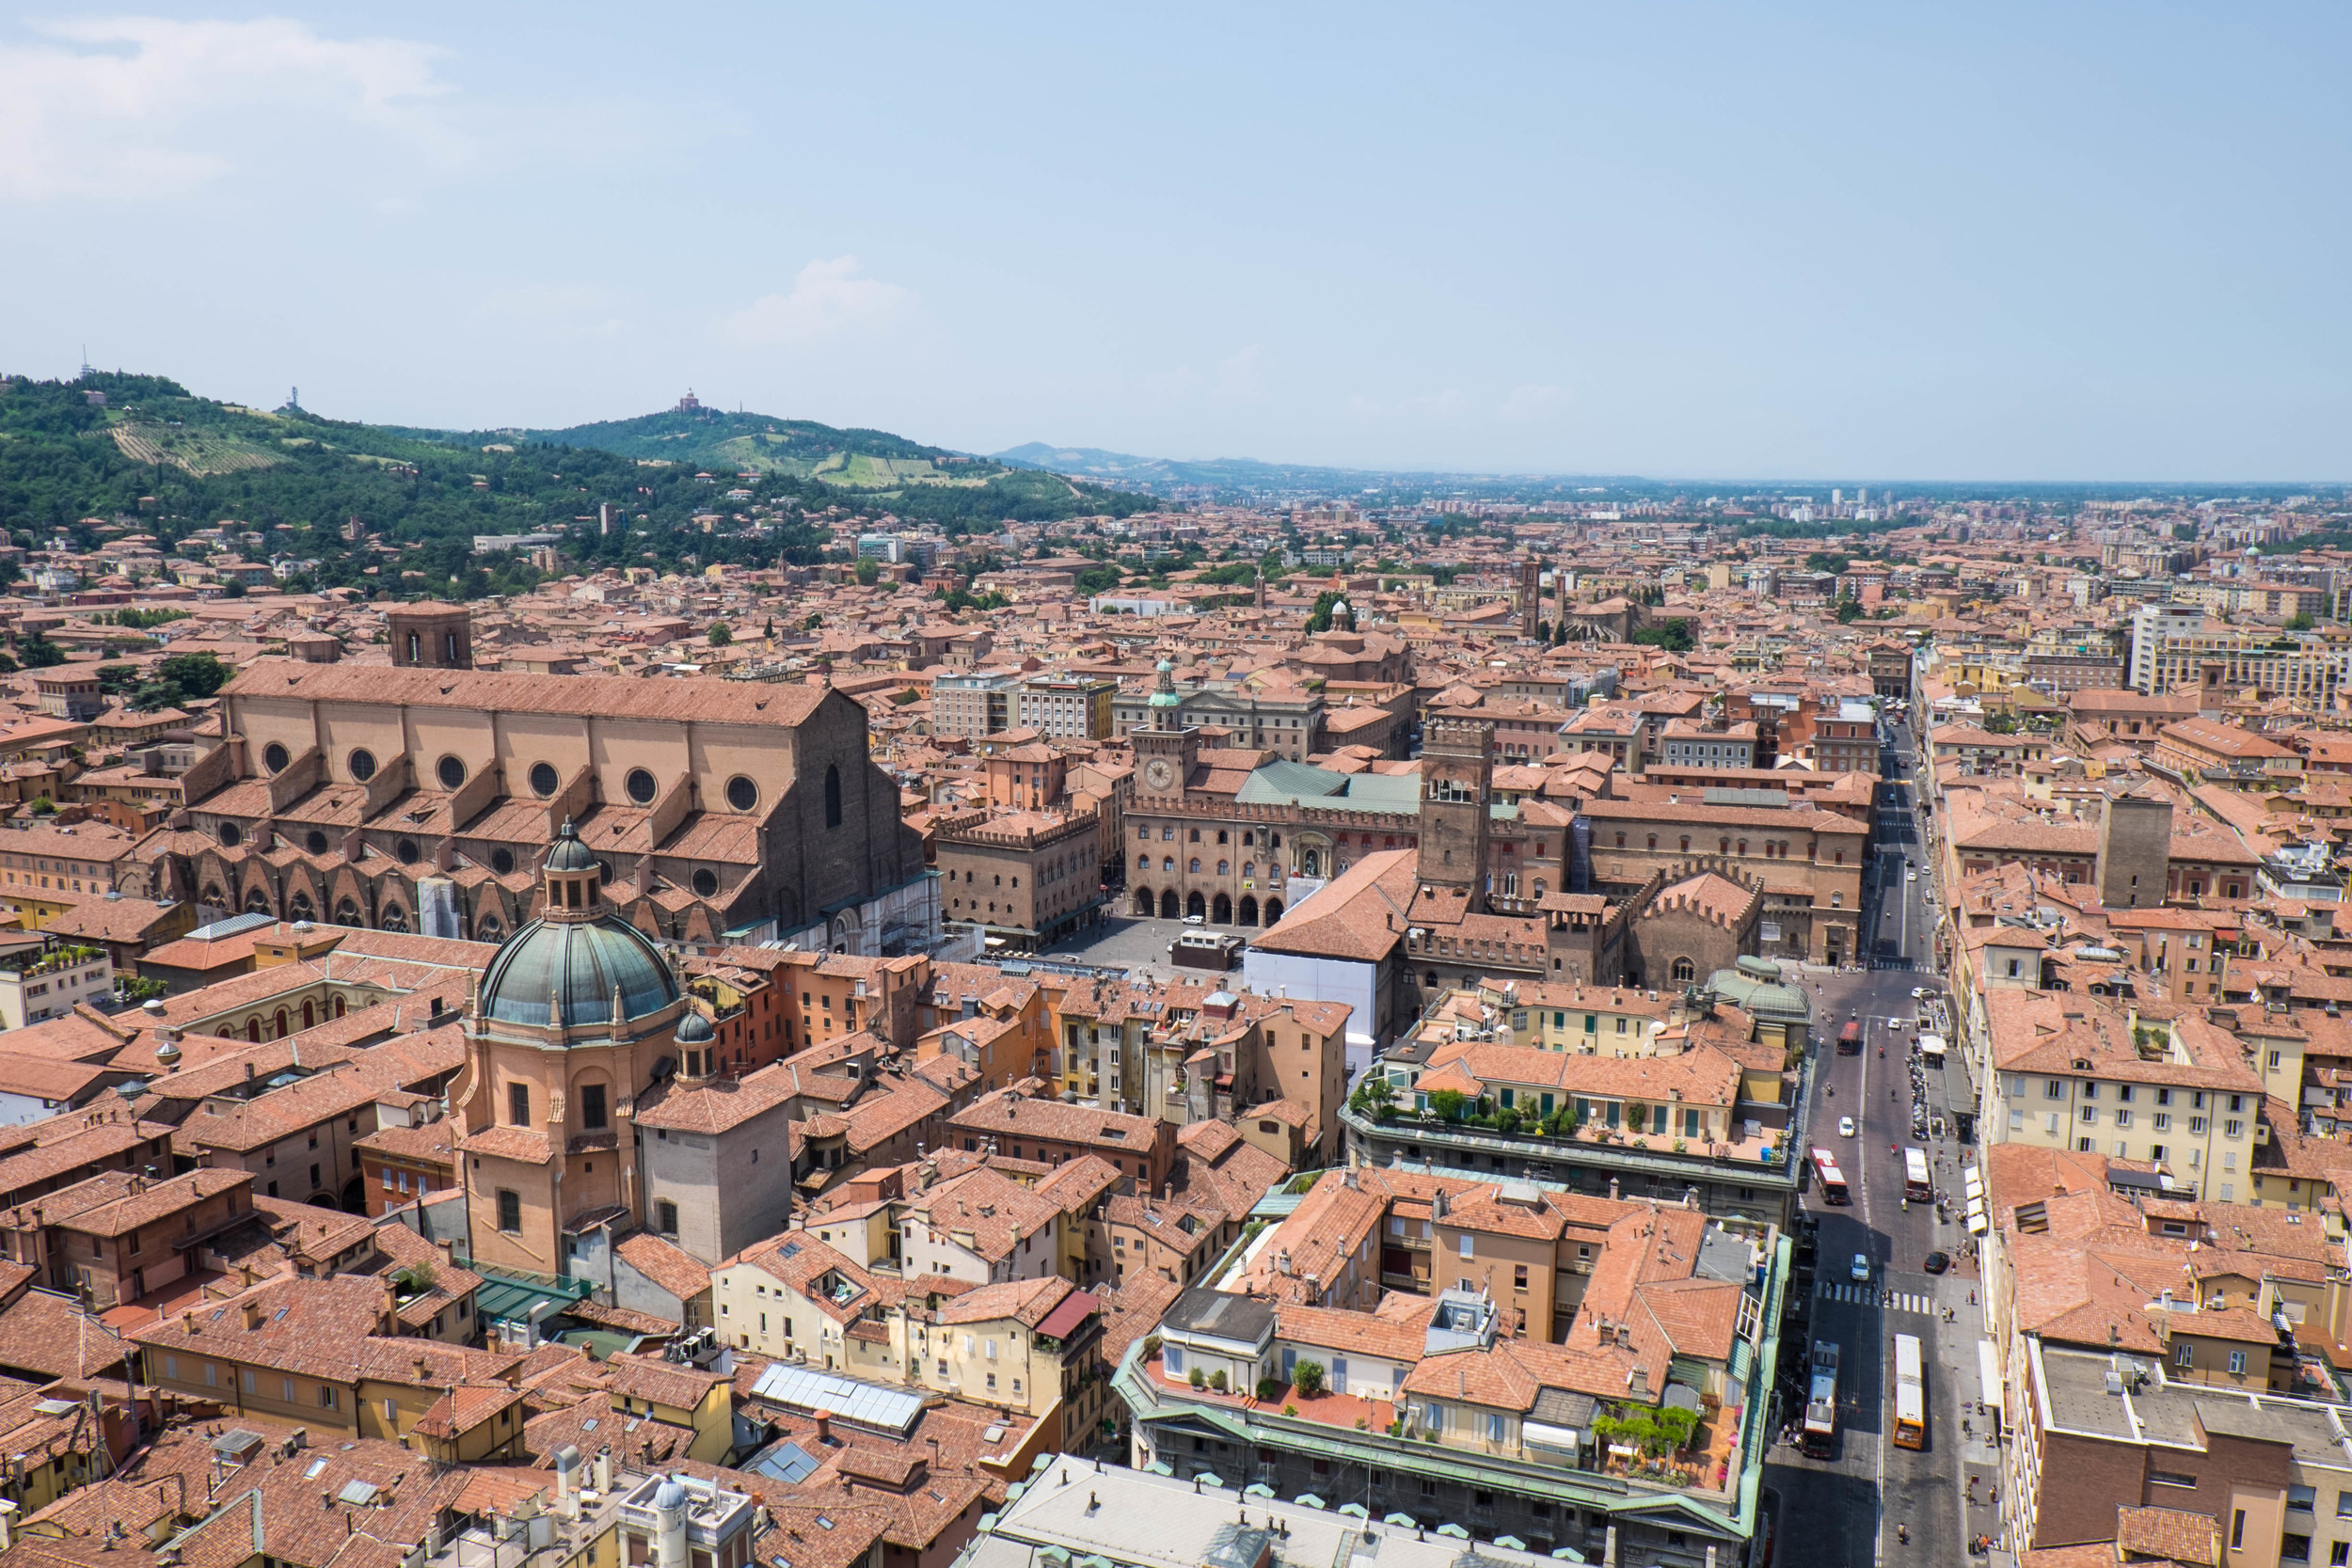 Climbed 498 steps up the Tower of Aisnelli to see this beautiful view.